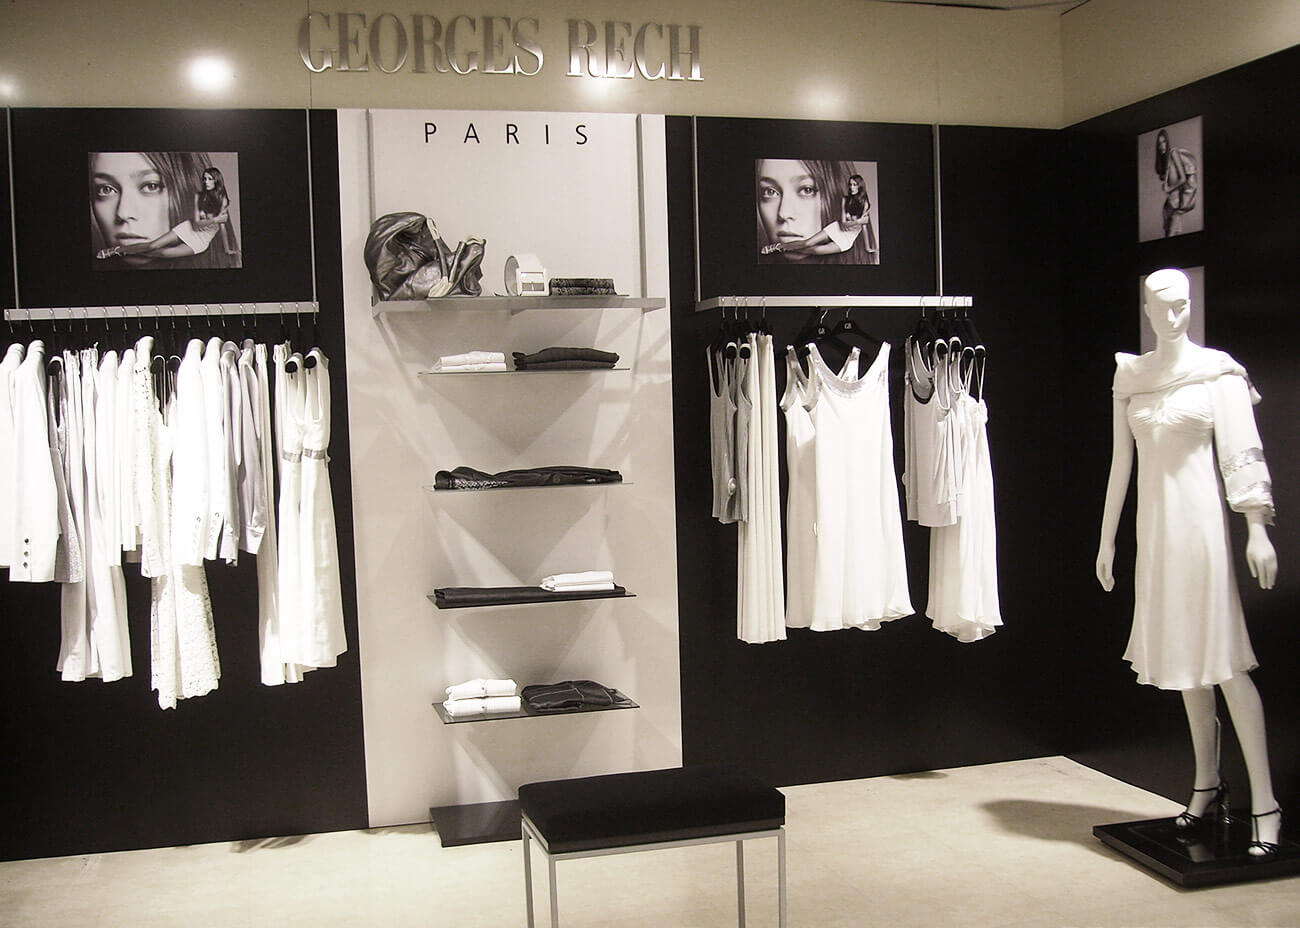 georges-rech-img05-caad-retail-design-barcelona